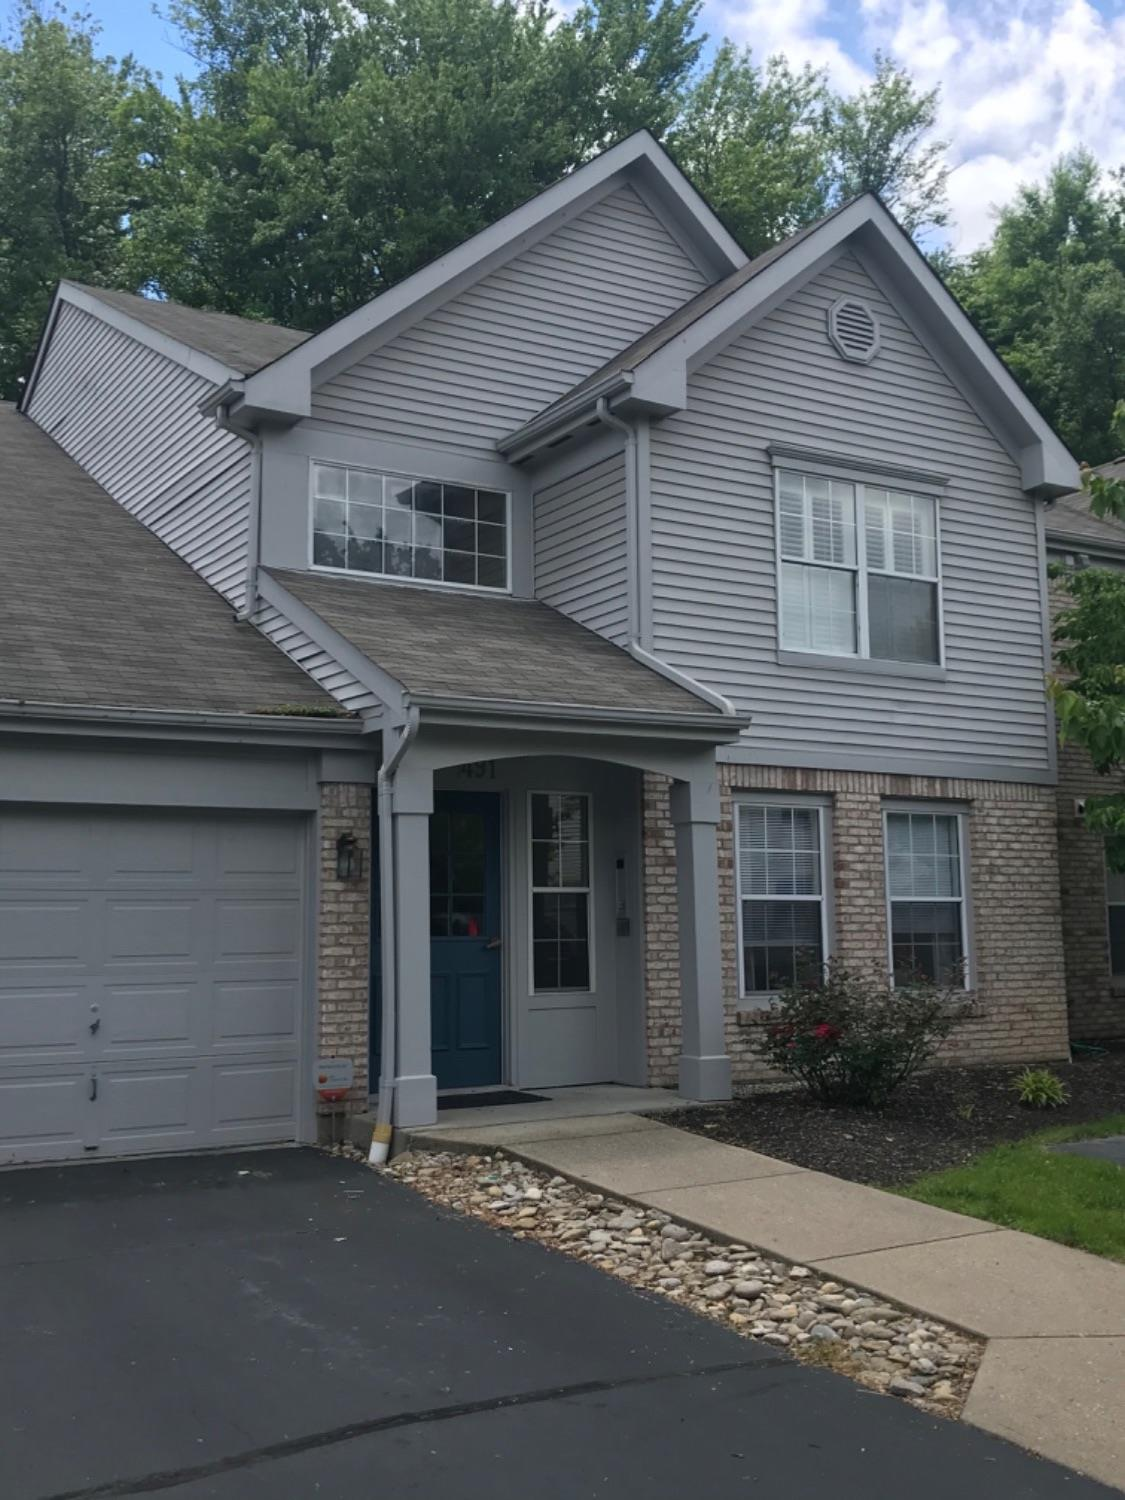 491 Mapleport Wy #A Union Twp. (Clermont), OH